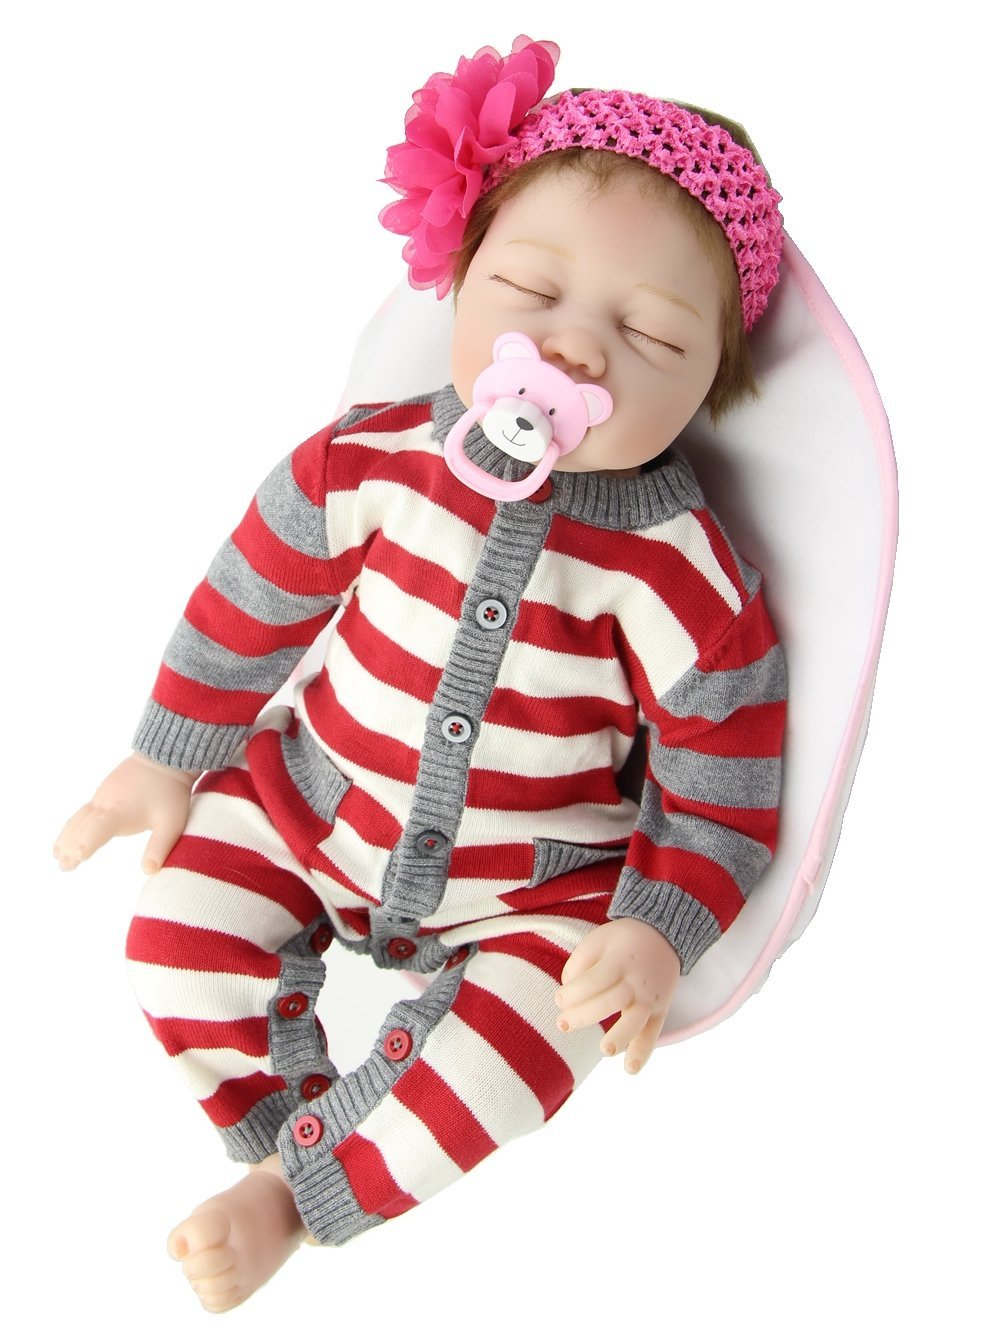 NPK 22 Inch Realistic Sleeping Reborn Baby Dolls Girl Soft Silicone Lifelike Newborn Doll Free Magnet Pacifier Dummy hot sale 2016 npk 22 inch reborn baby doll lovely soft silicone newborn girl dolls as birthday christmas gifts free pacifier